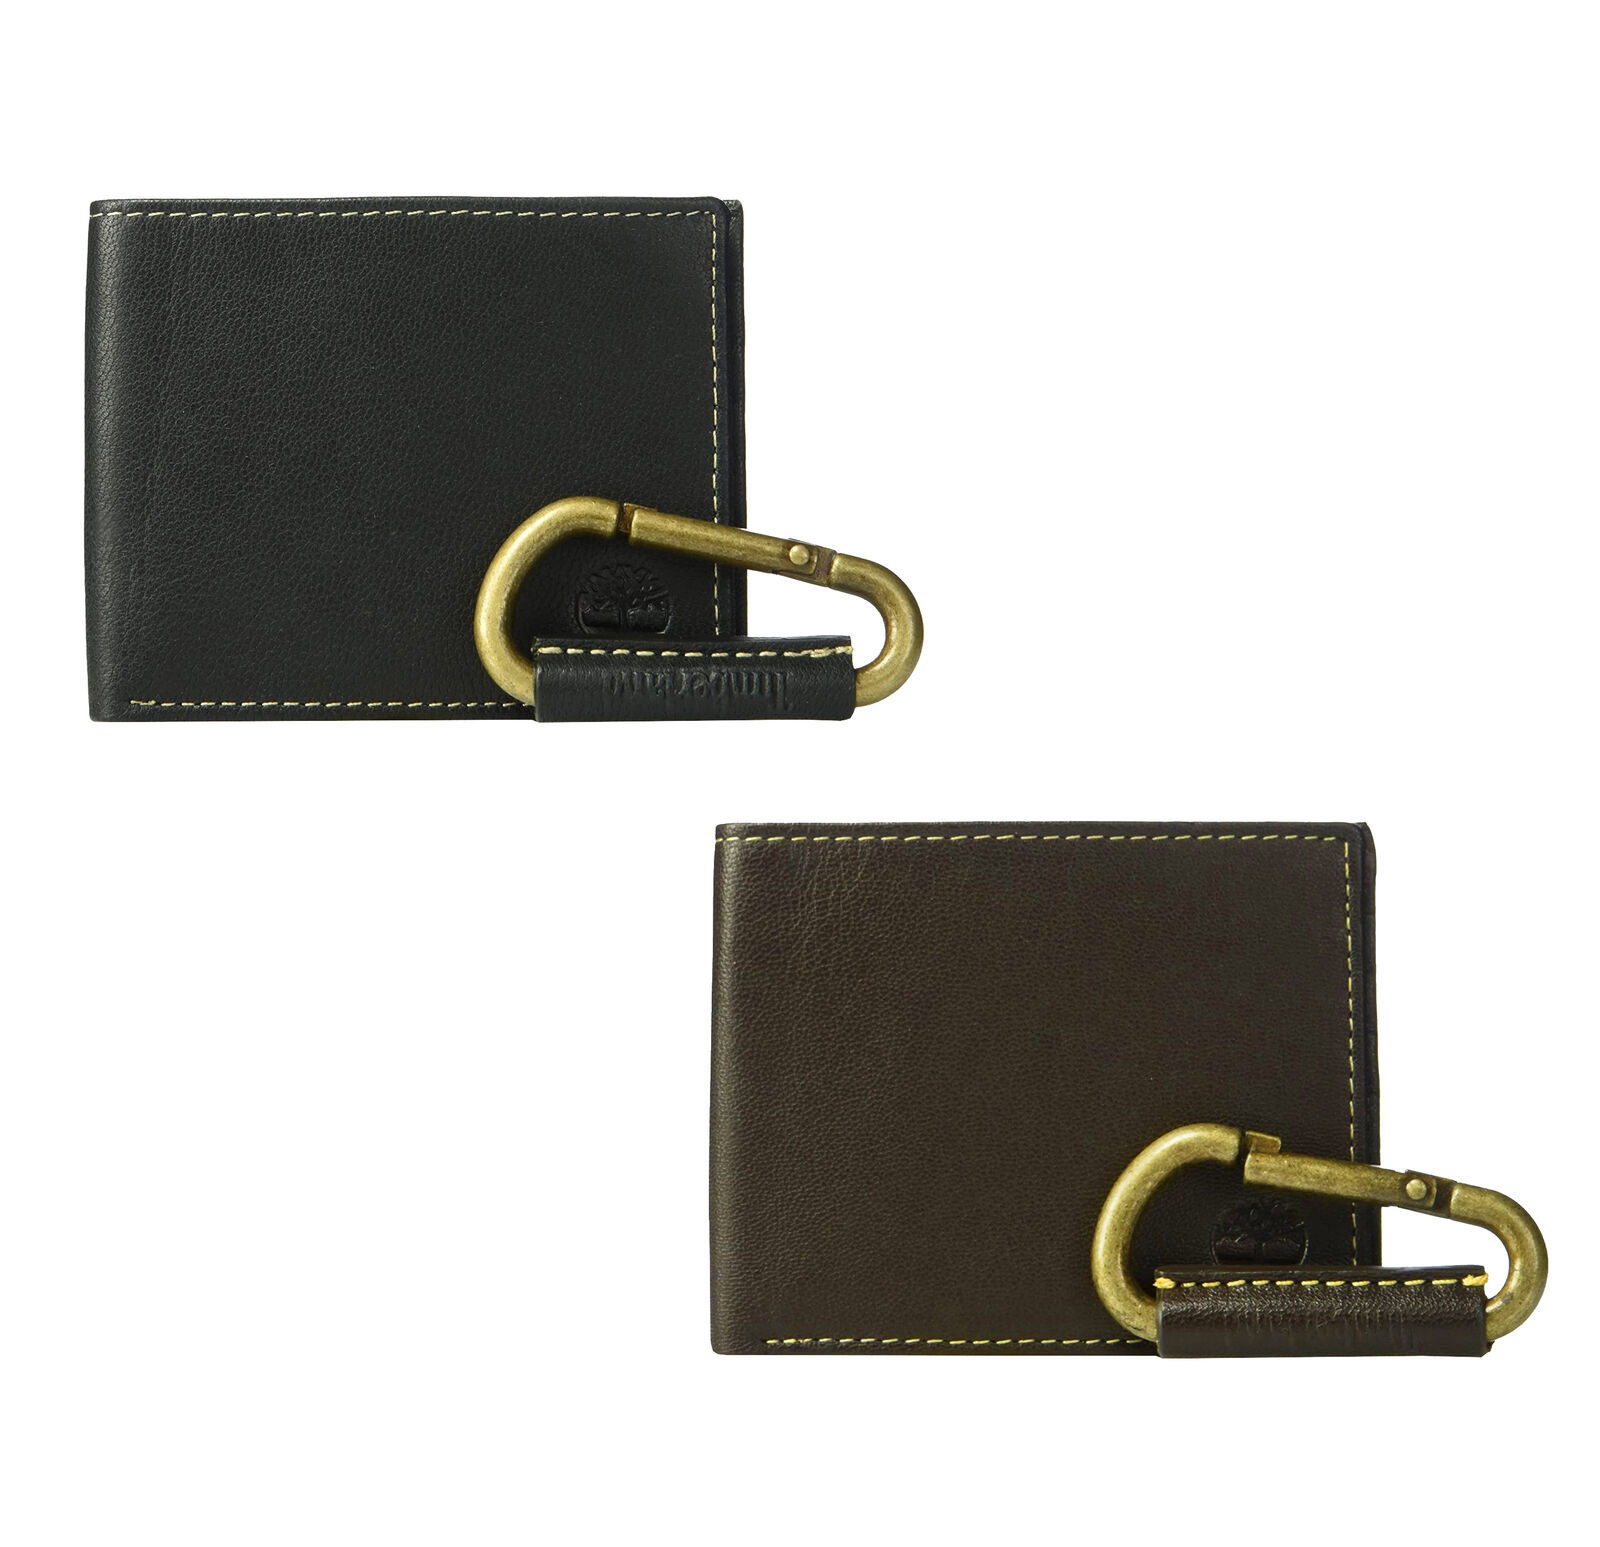 Timberland Men's Leather Billfold Logo Wallet w/ Leather Key Chain NP0440/01